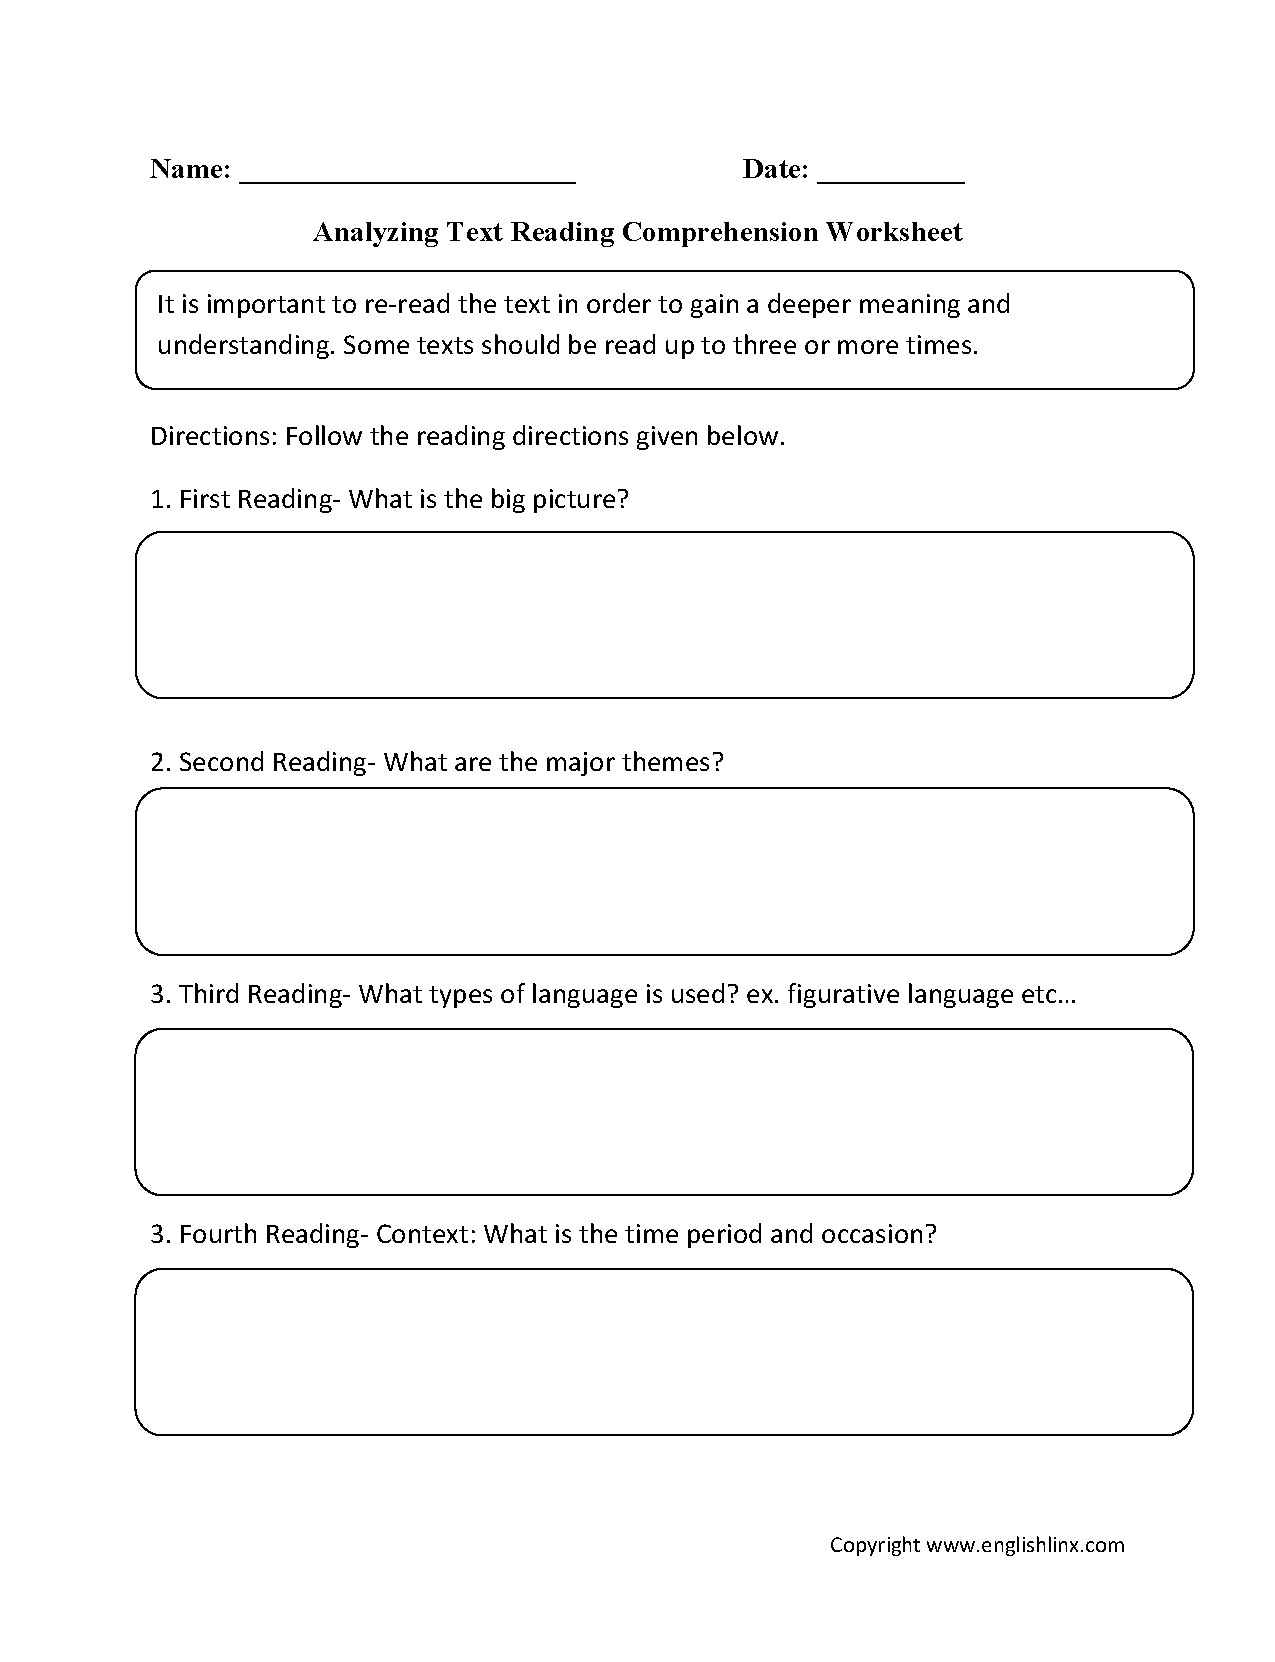 Worksheets Reading Comprehension Worksheets For Adults reading comprehension worksheets analyzing text worksheets